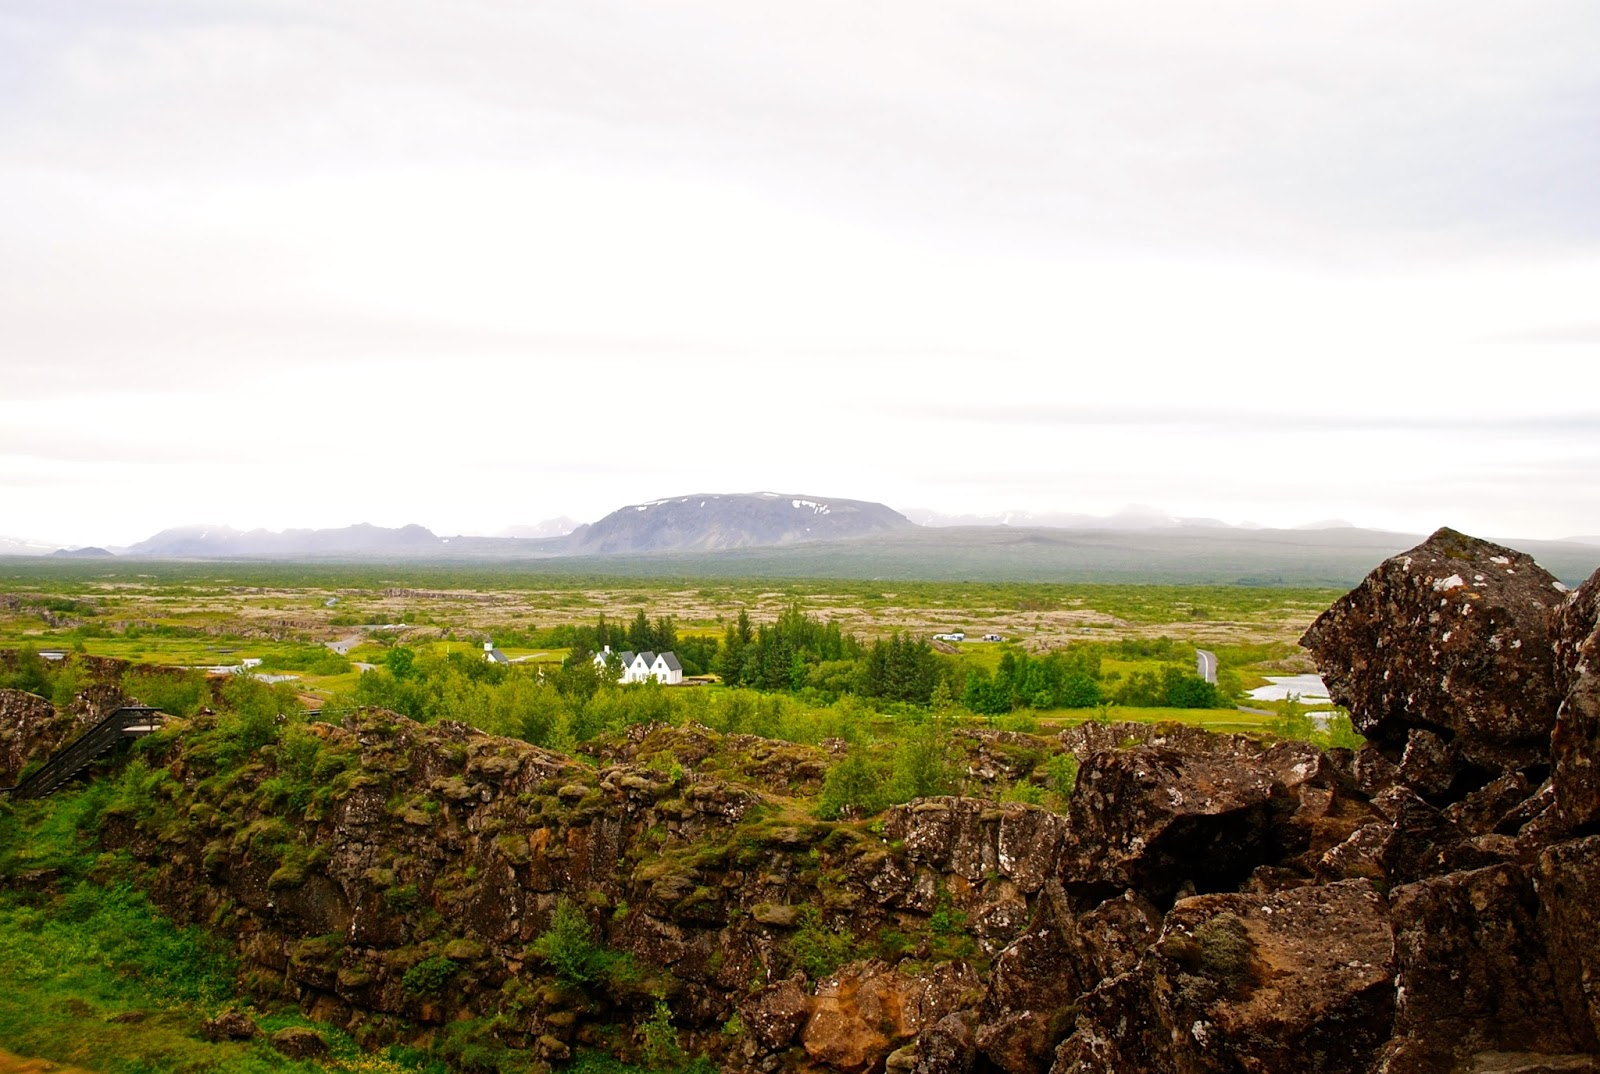 Things to do in Reykjavik Iceland : Find your dream home in the Icelandic wilderness